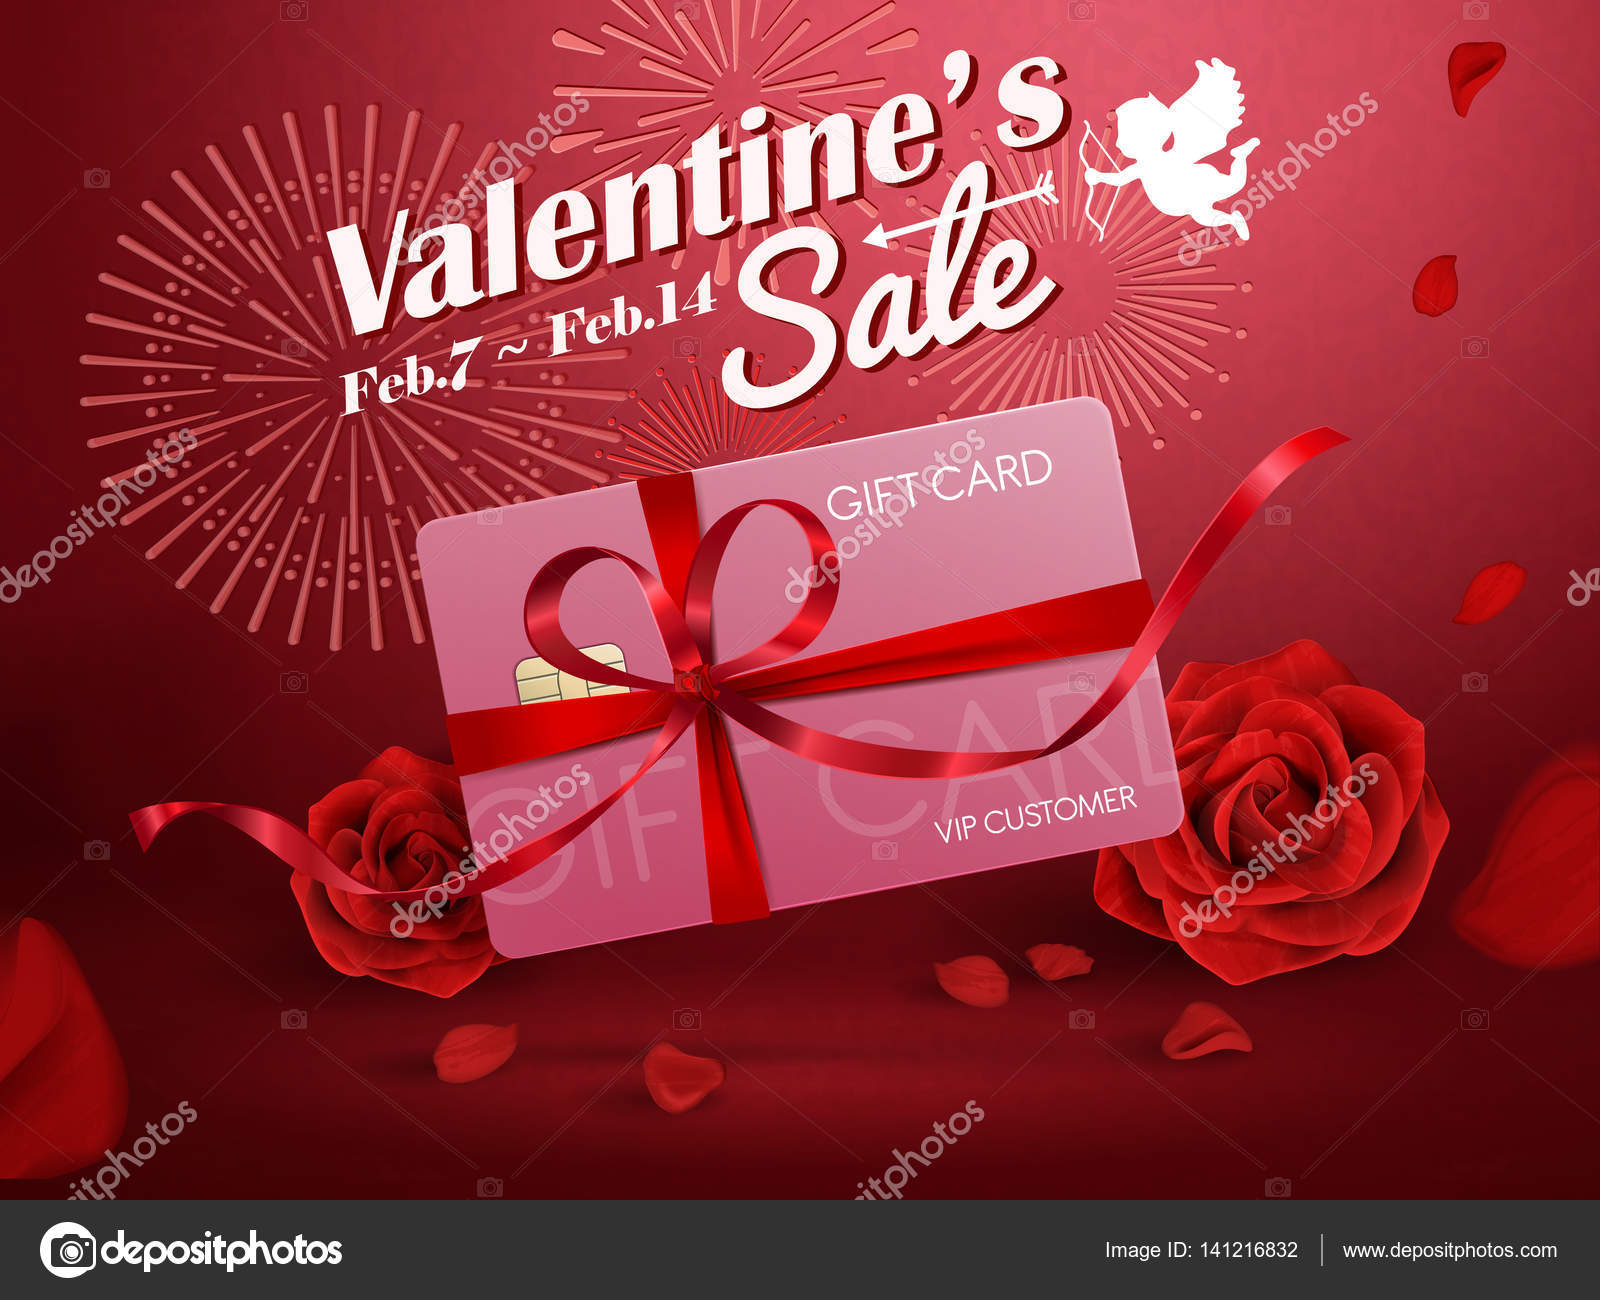 Valentine S Sale Ads Stock Vector C Hstrongart 141216832